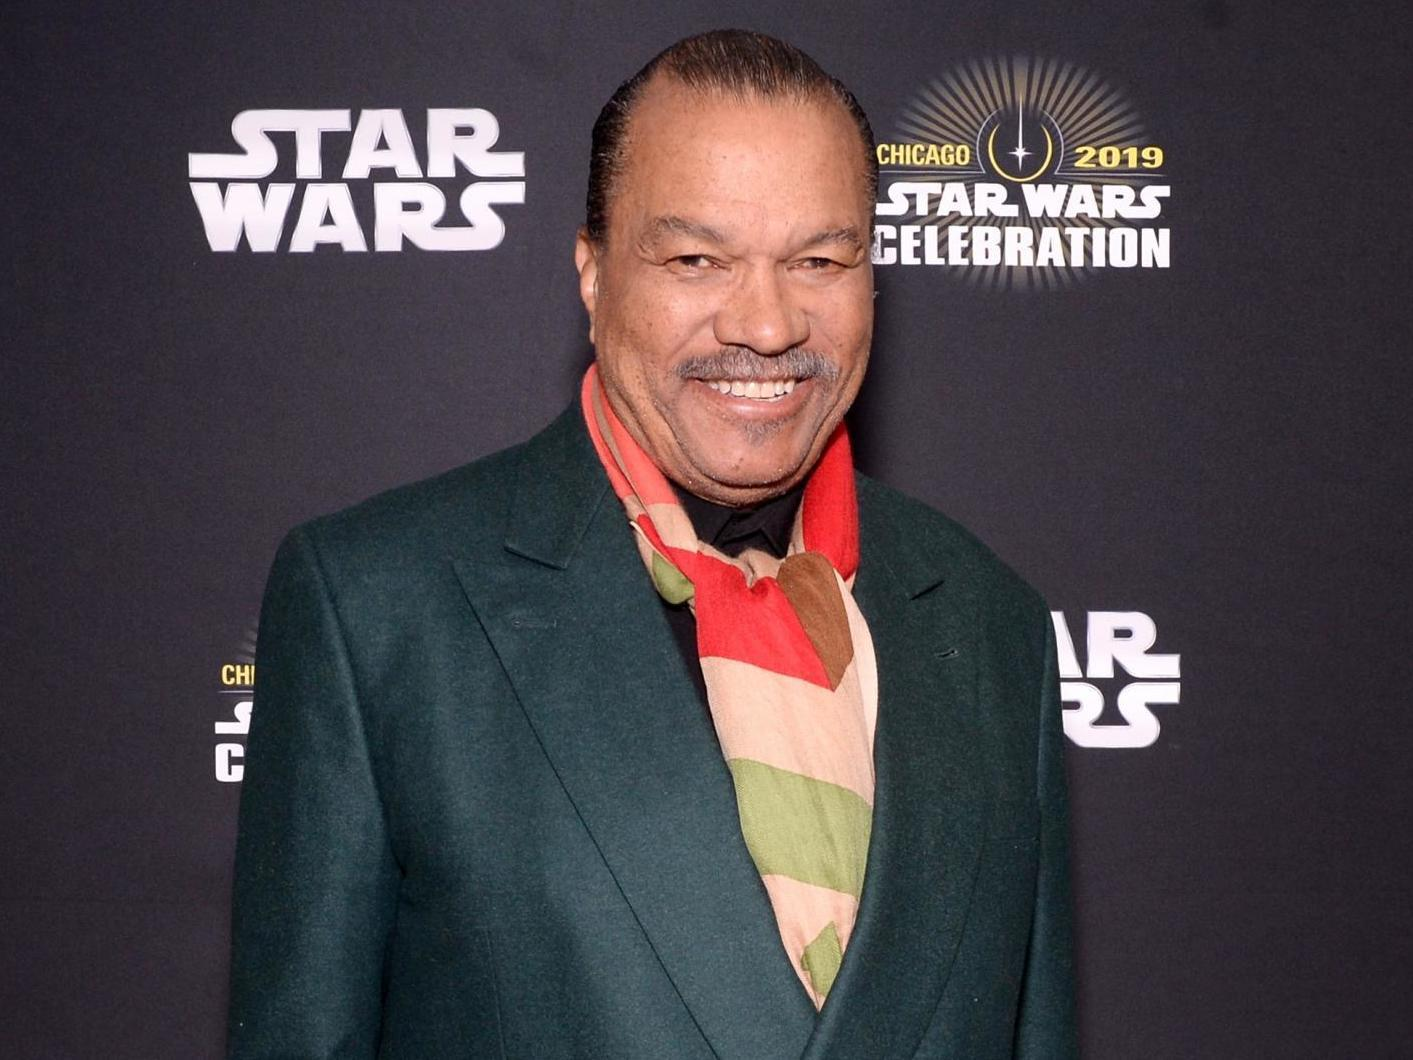 Star Wars actor Billy Dee Williams comes out as gender fluid